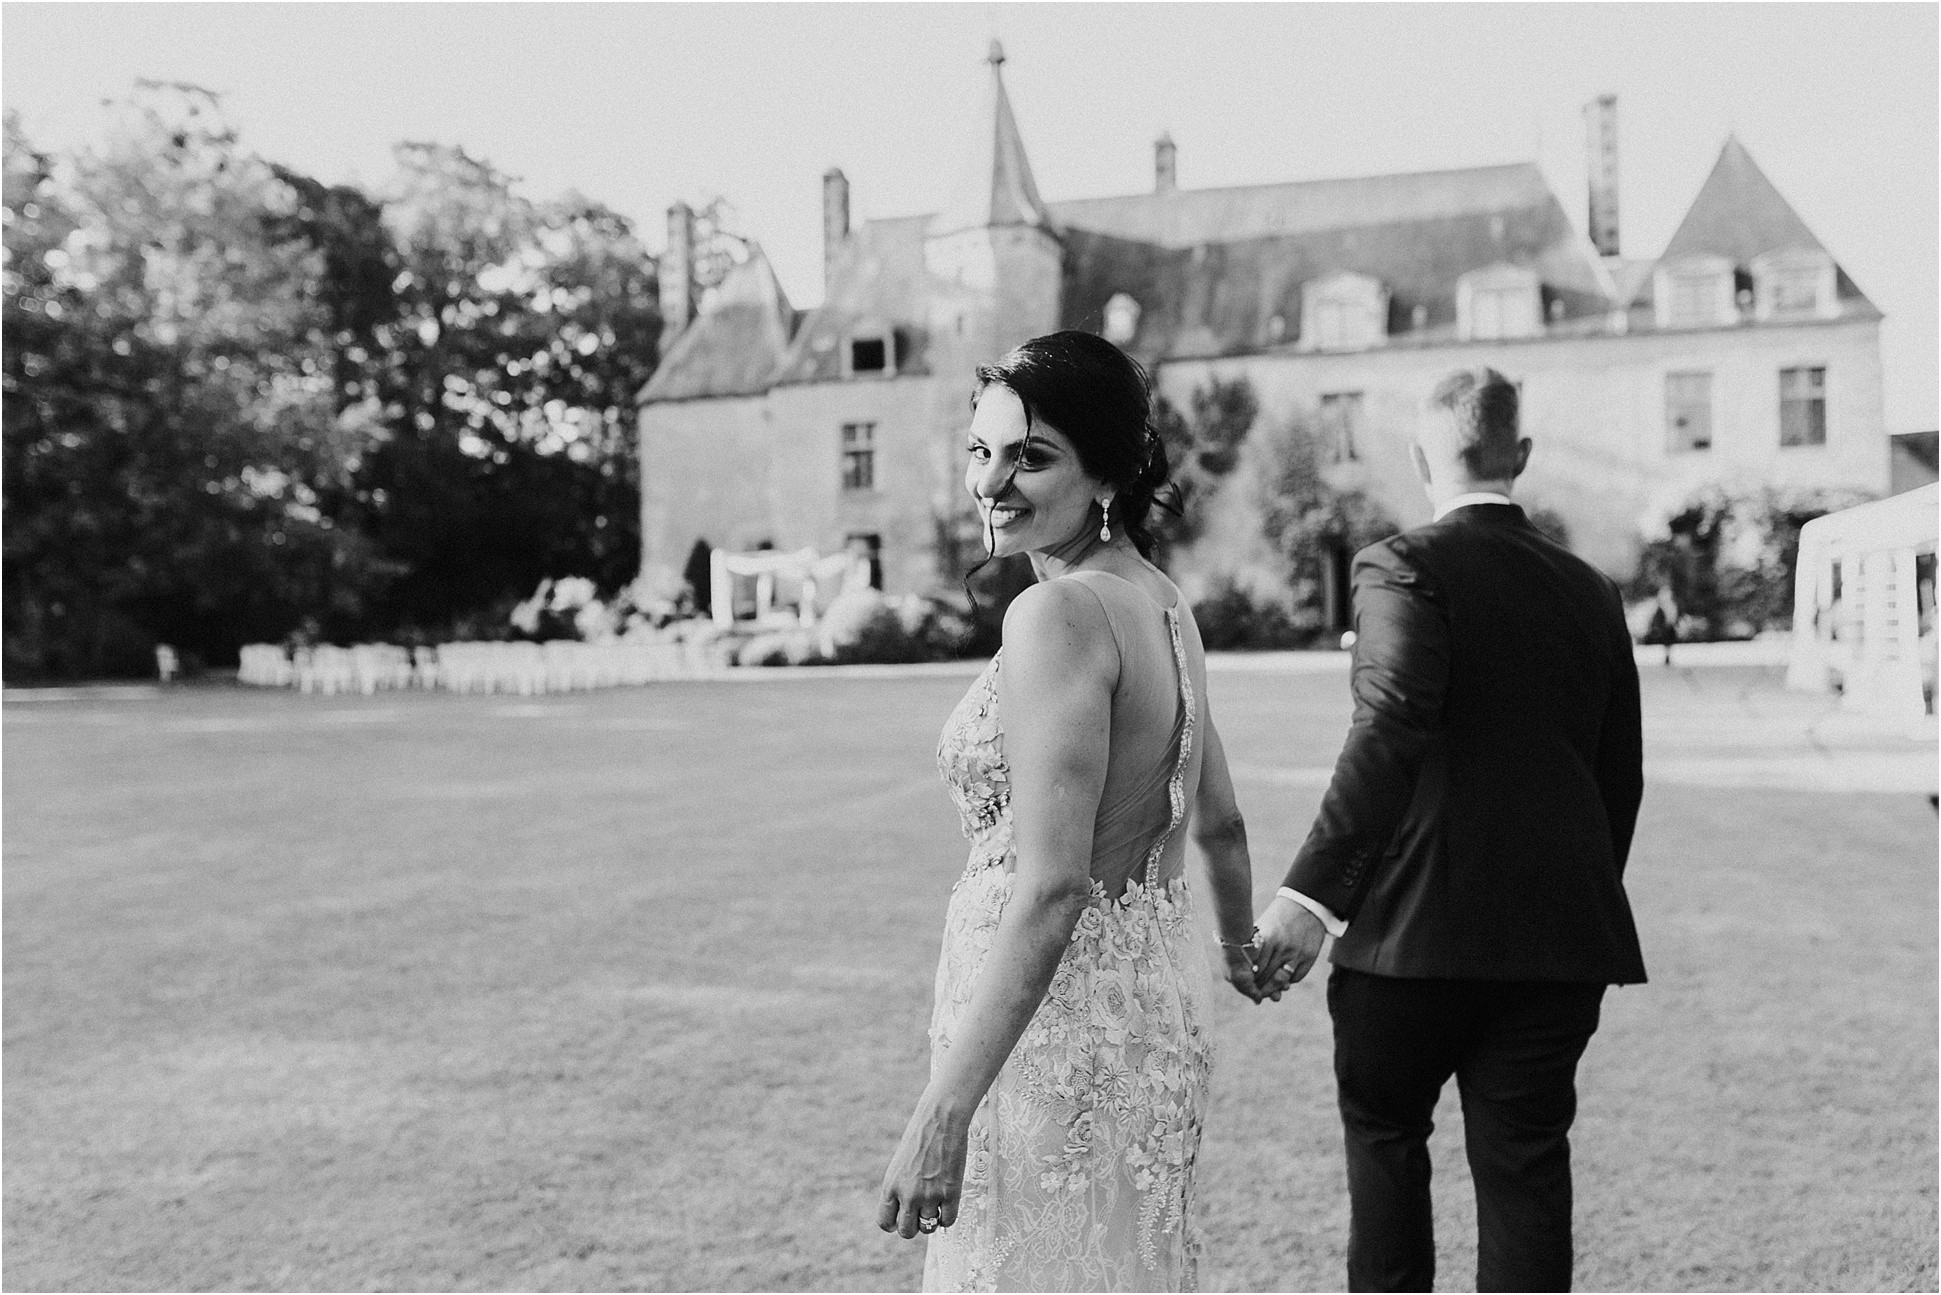 Kateryna-photos-photographe-mariage-chateau-st-paterne-mayenne-normandie_0179.jpg